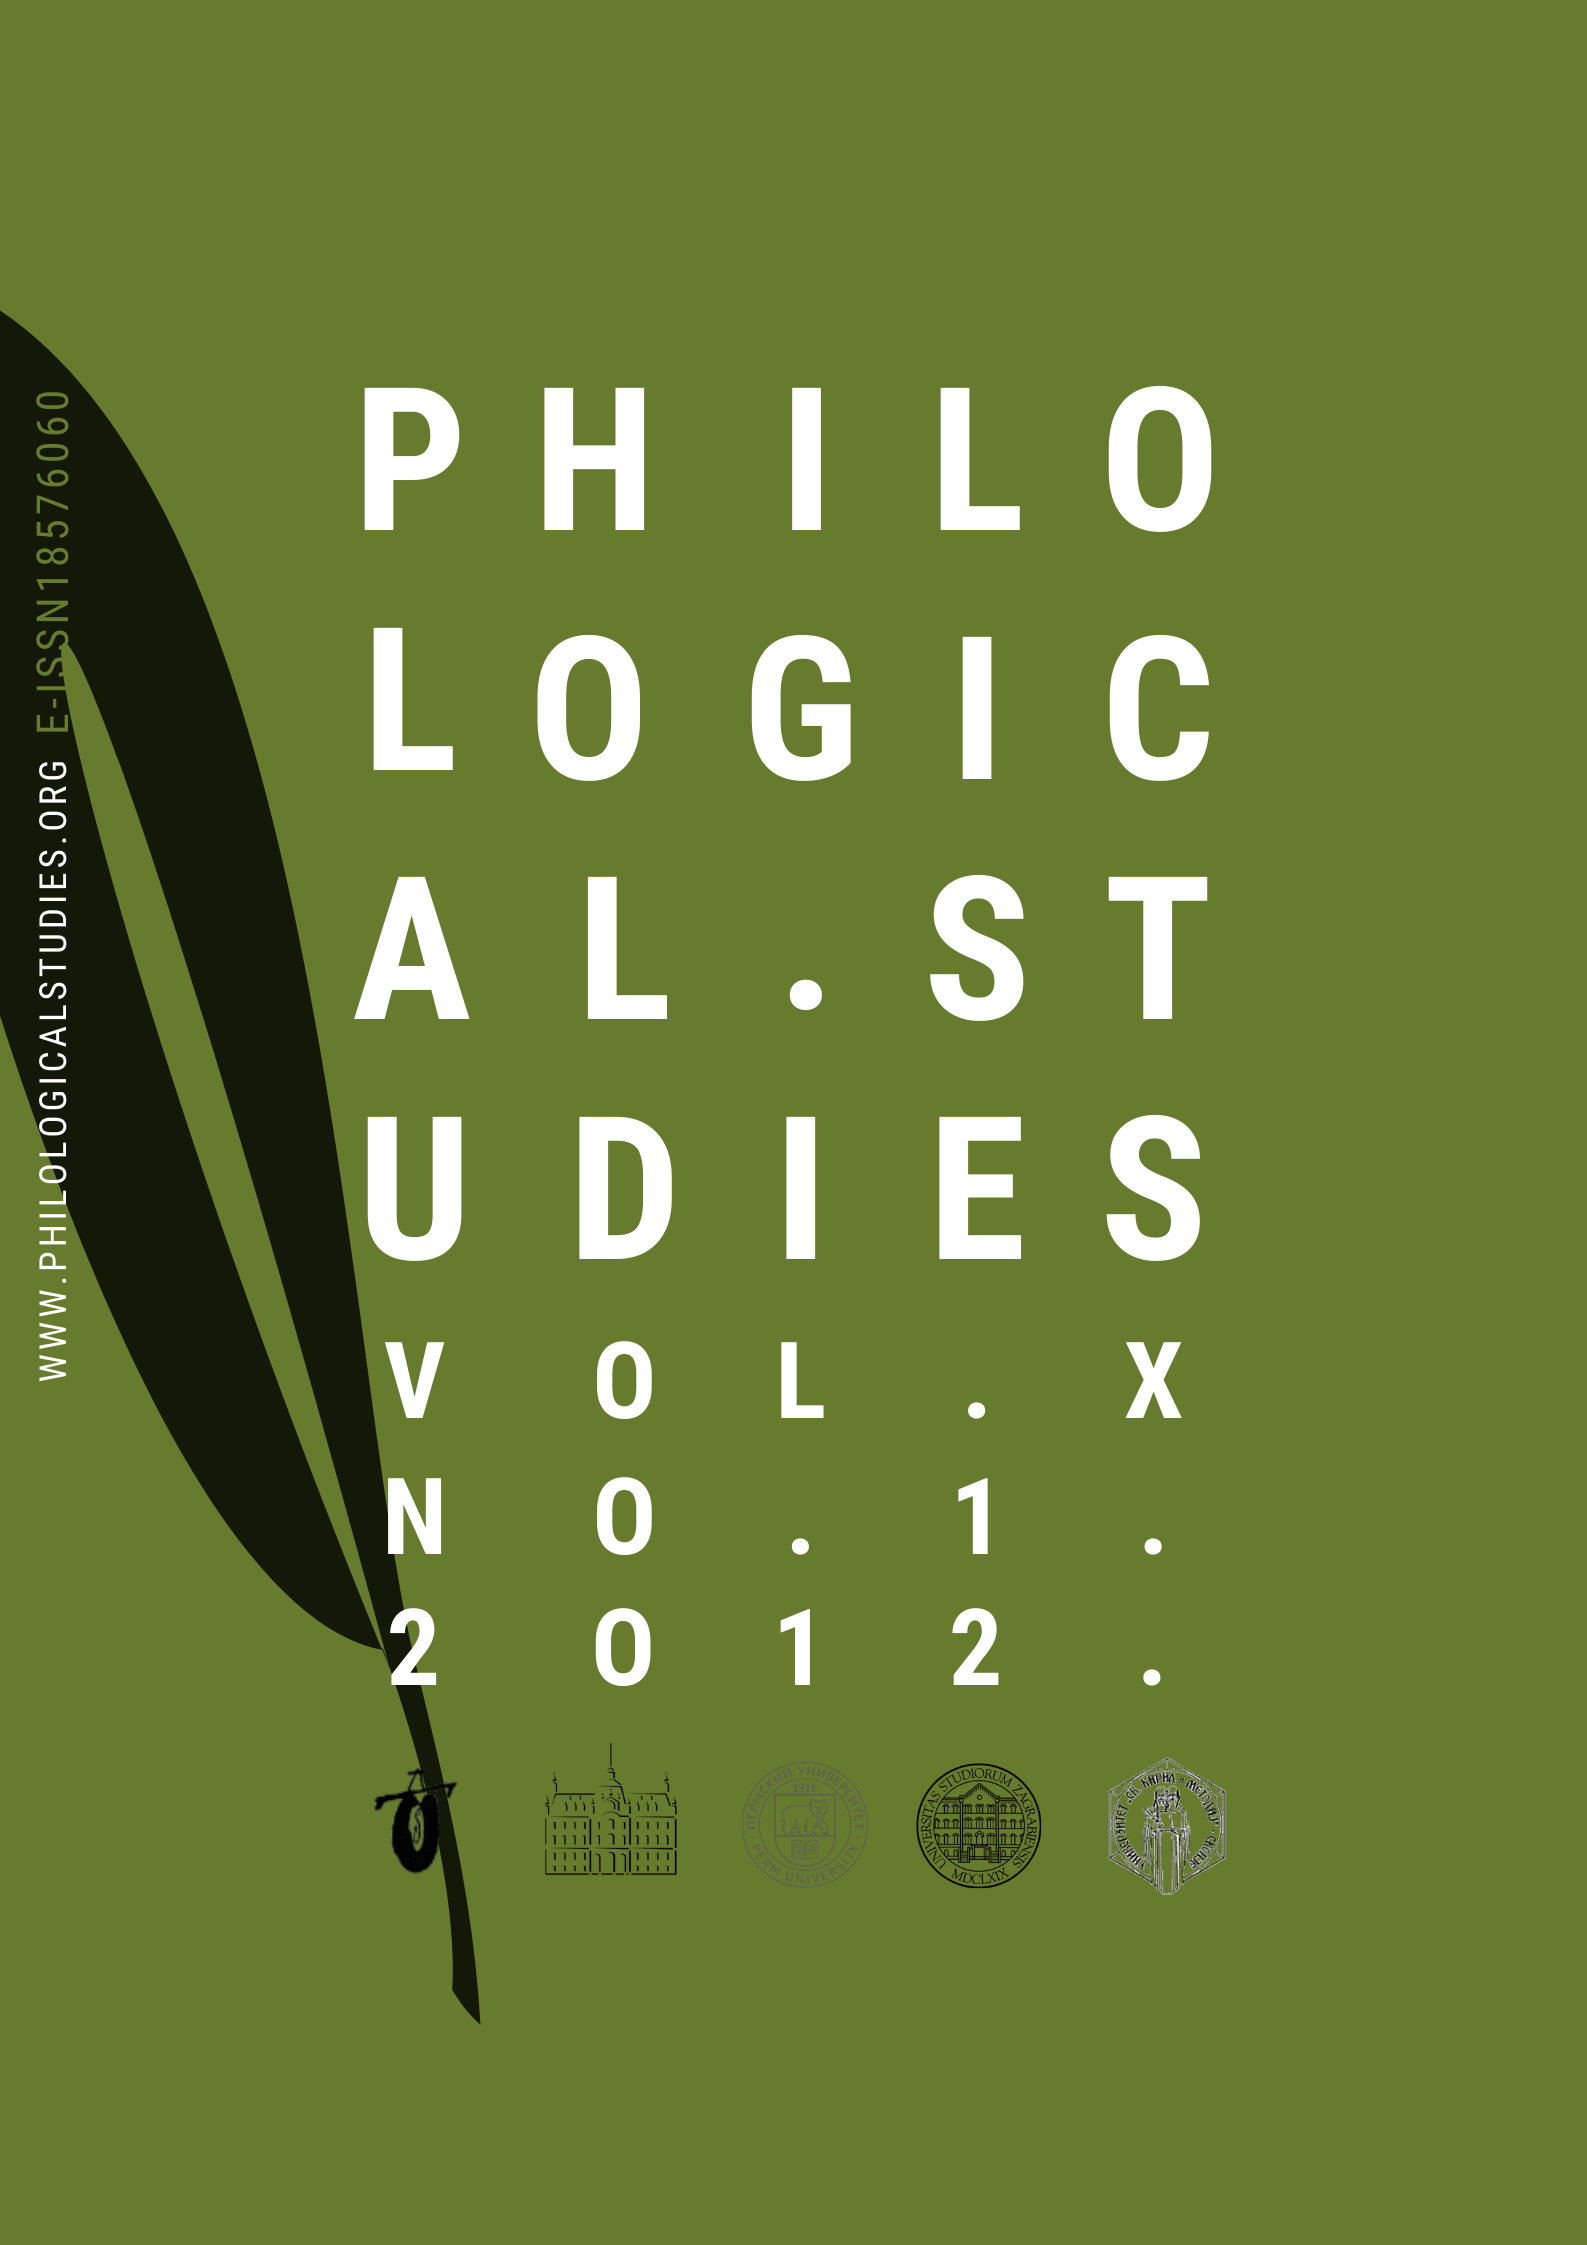 Philological Studies Vol.10 No.1 2012